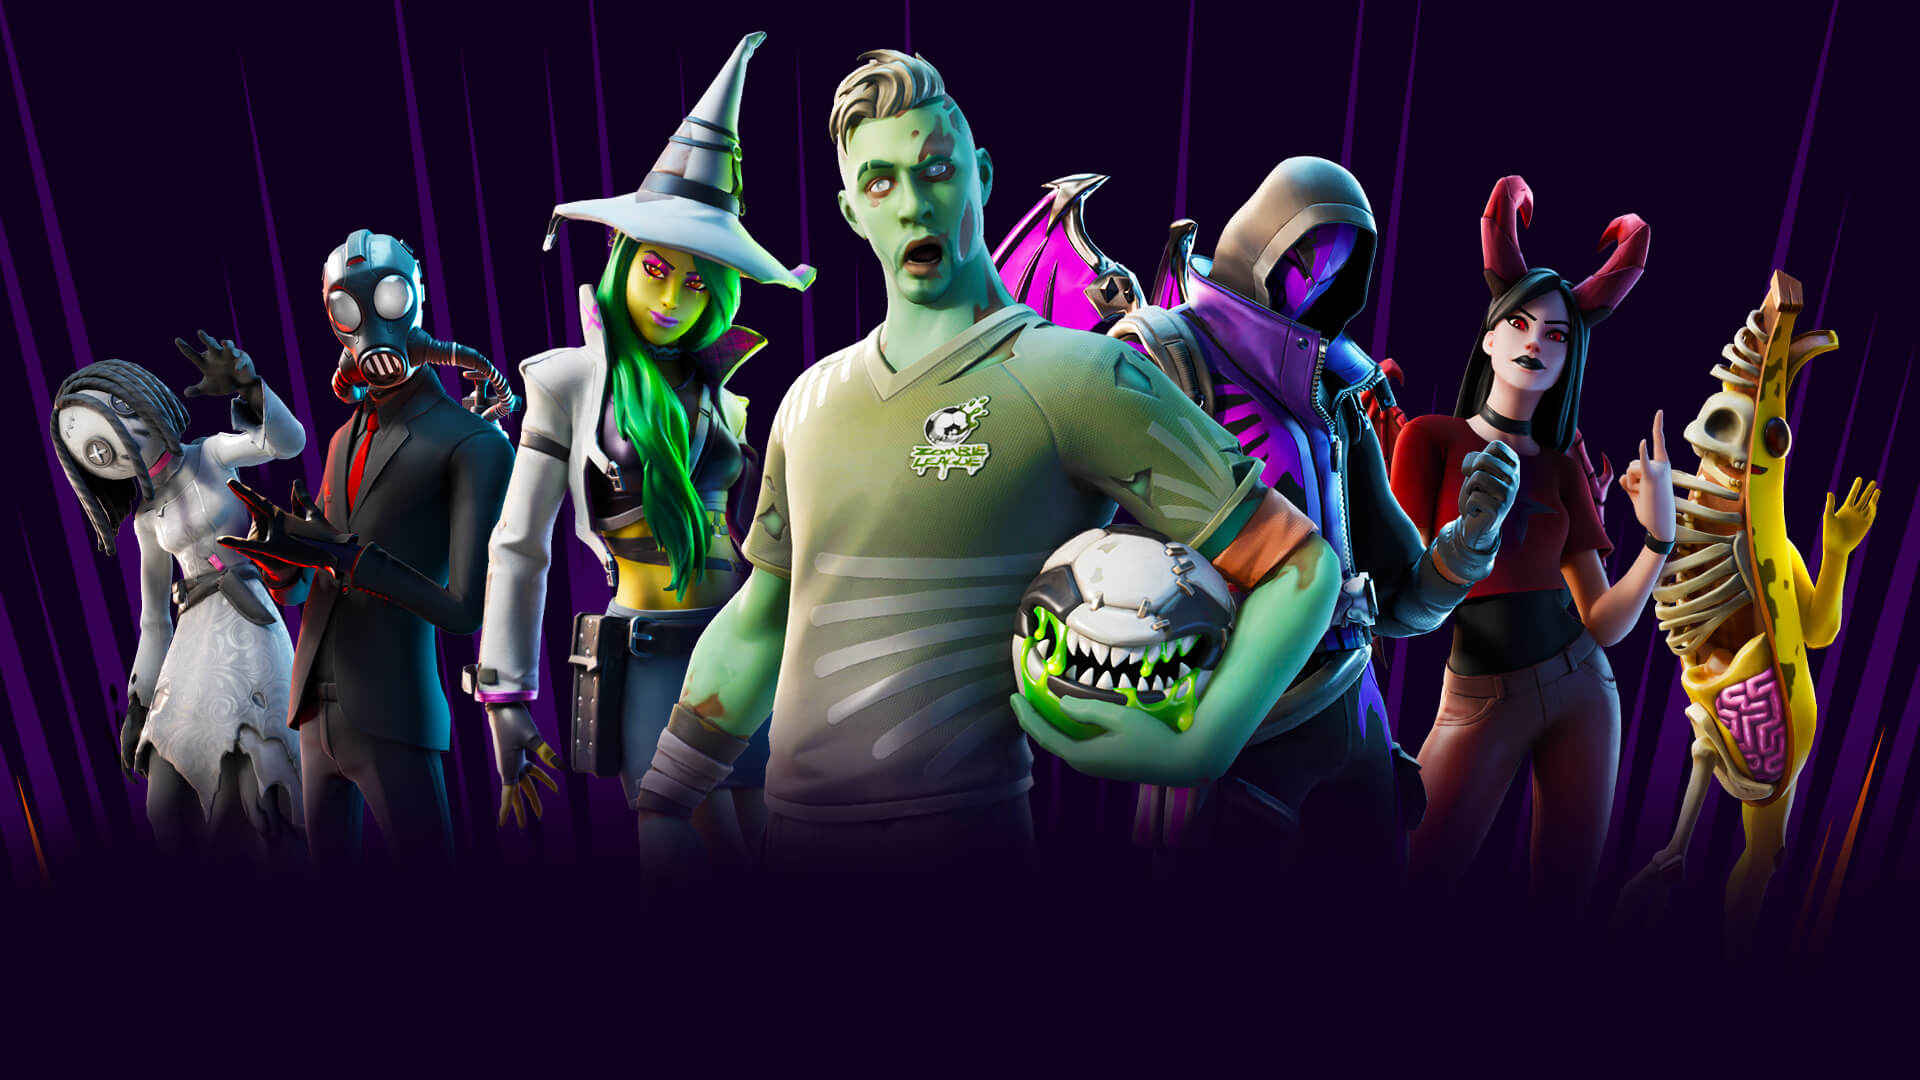 Fortnite's Fortnitemare 2019 skins standing together in a line with an undead soccer player at the center